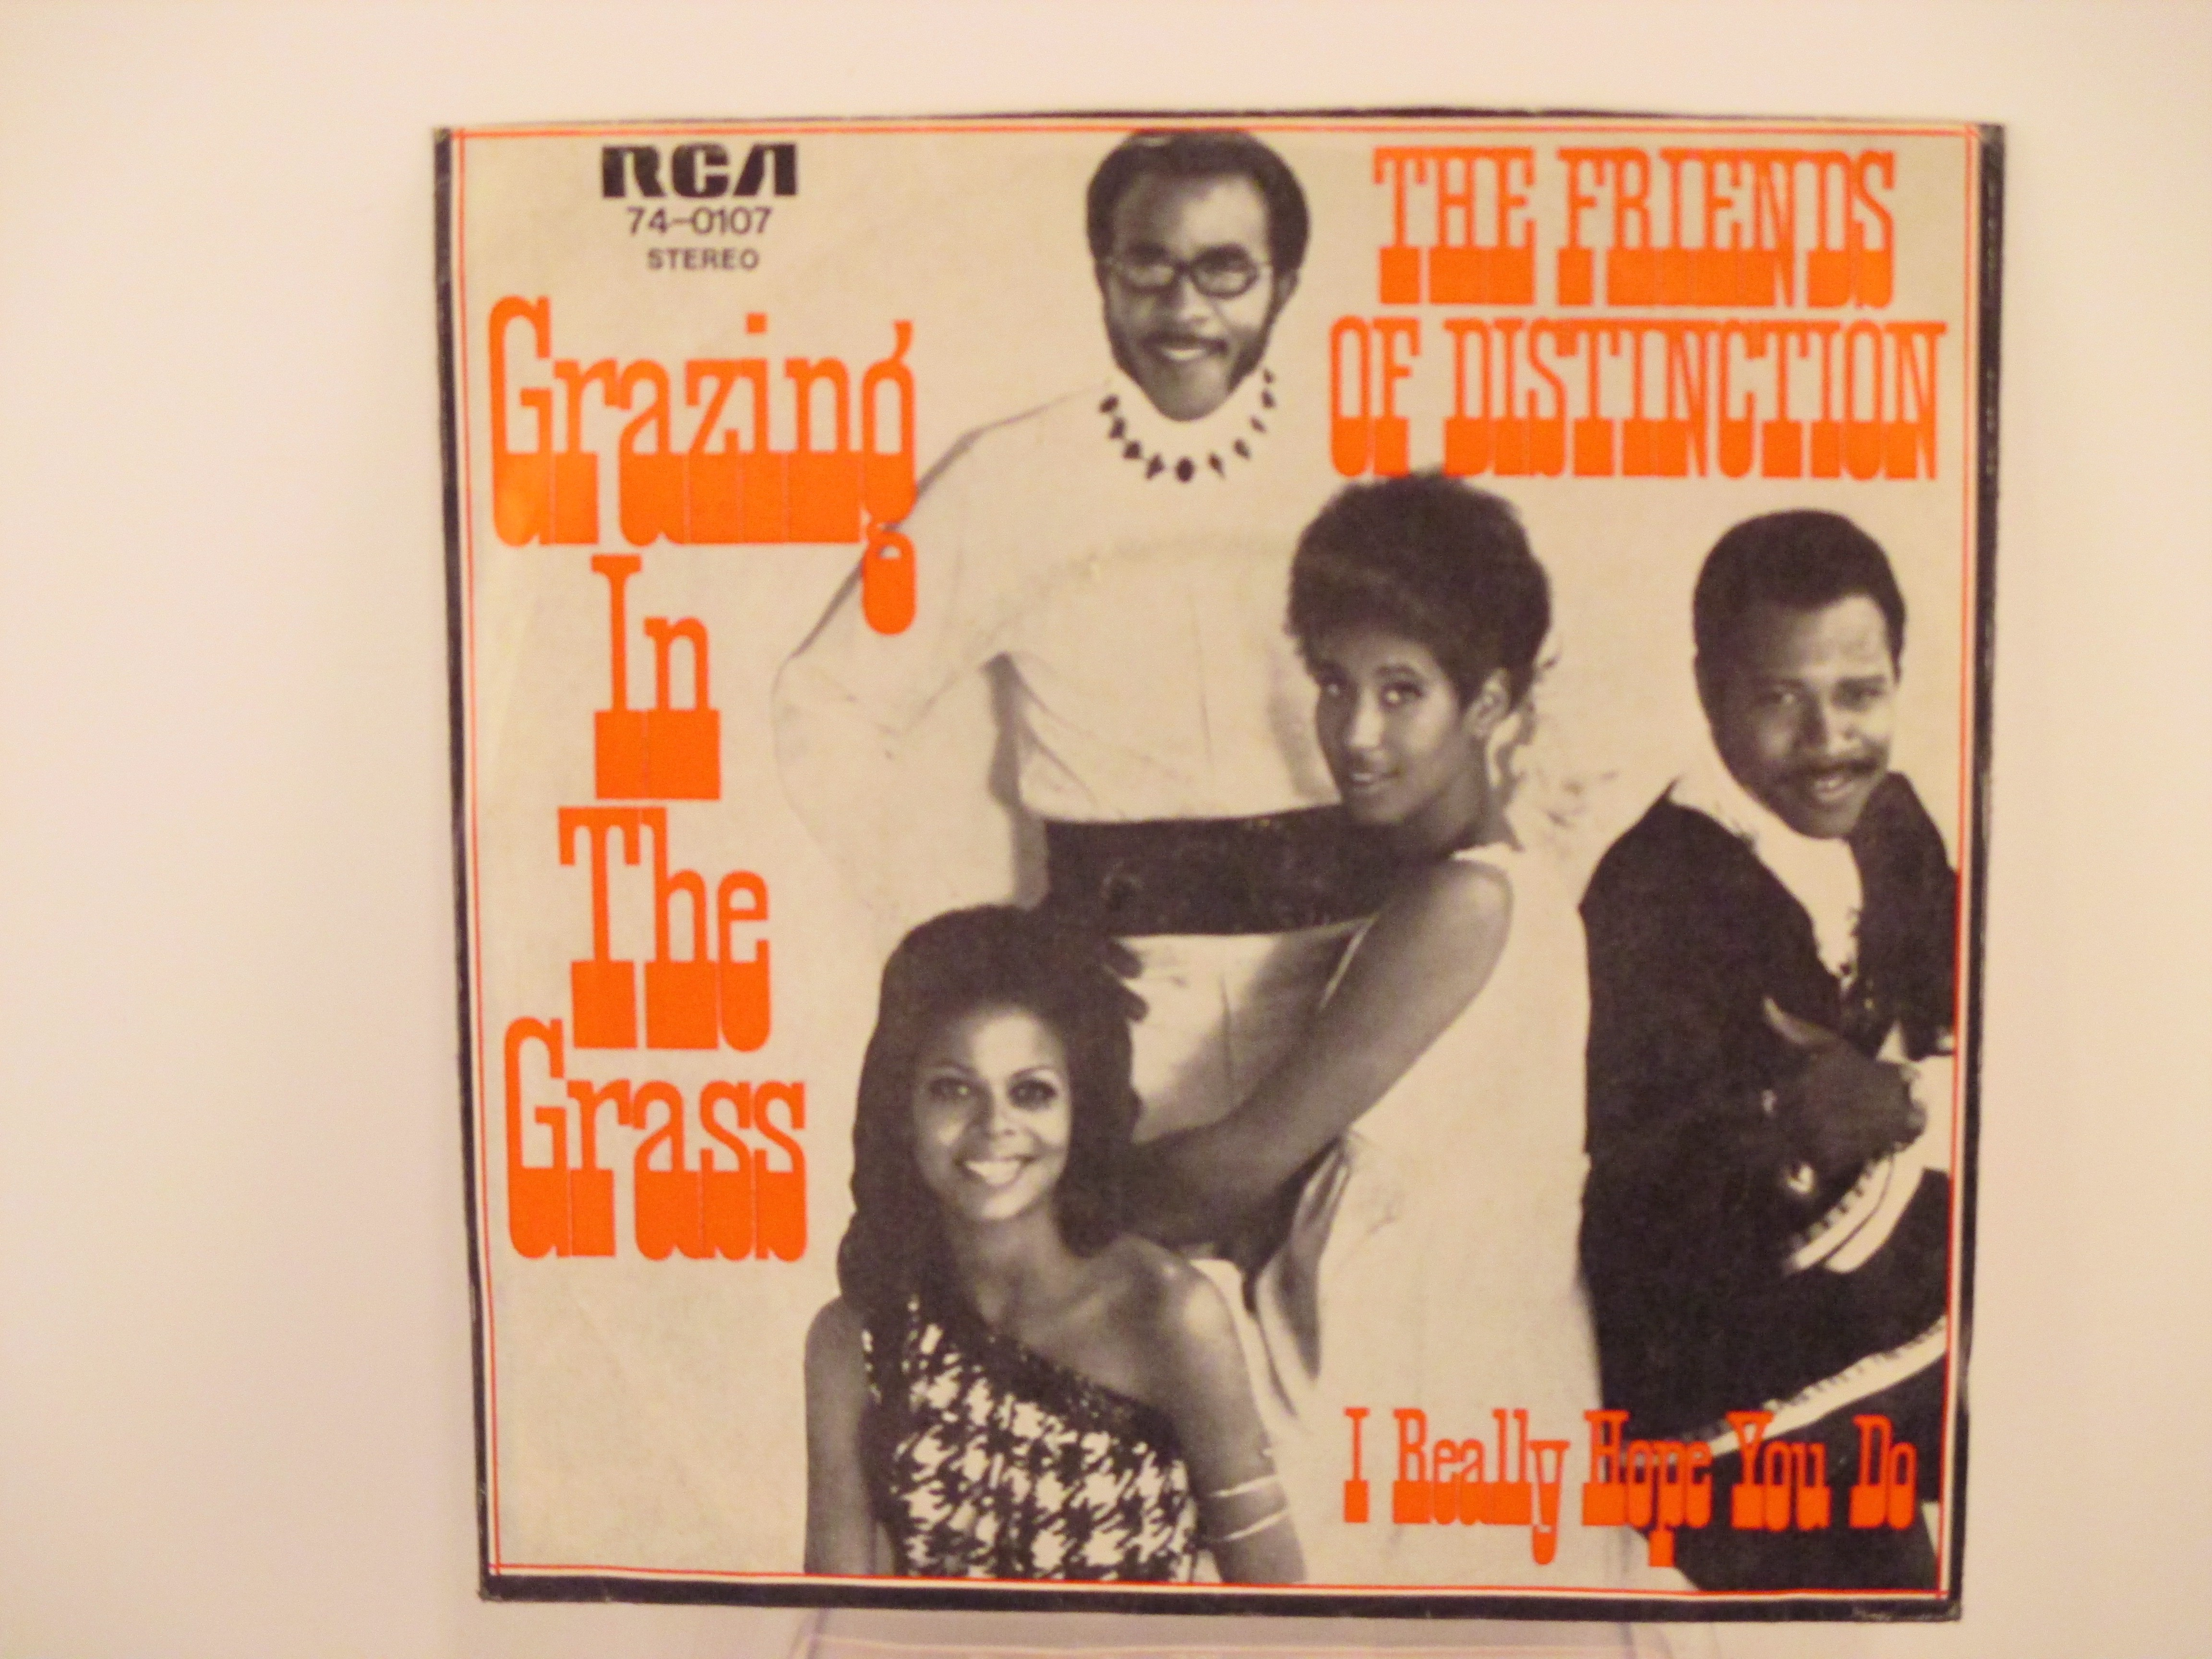 FRIENDS OF DISTINCTION : Grazing in the grass / I really hope you do